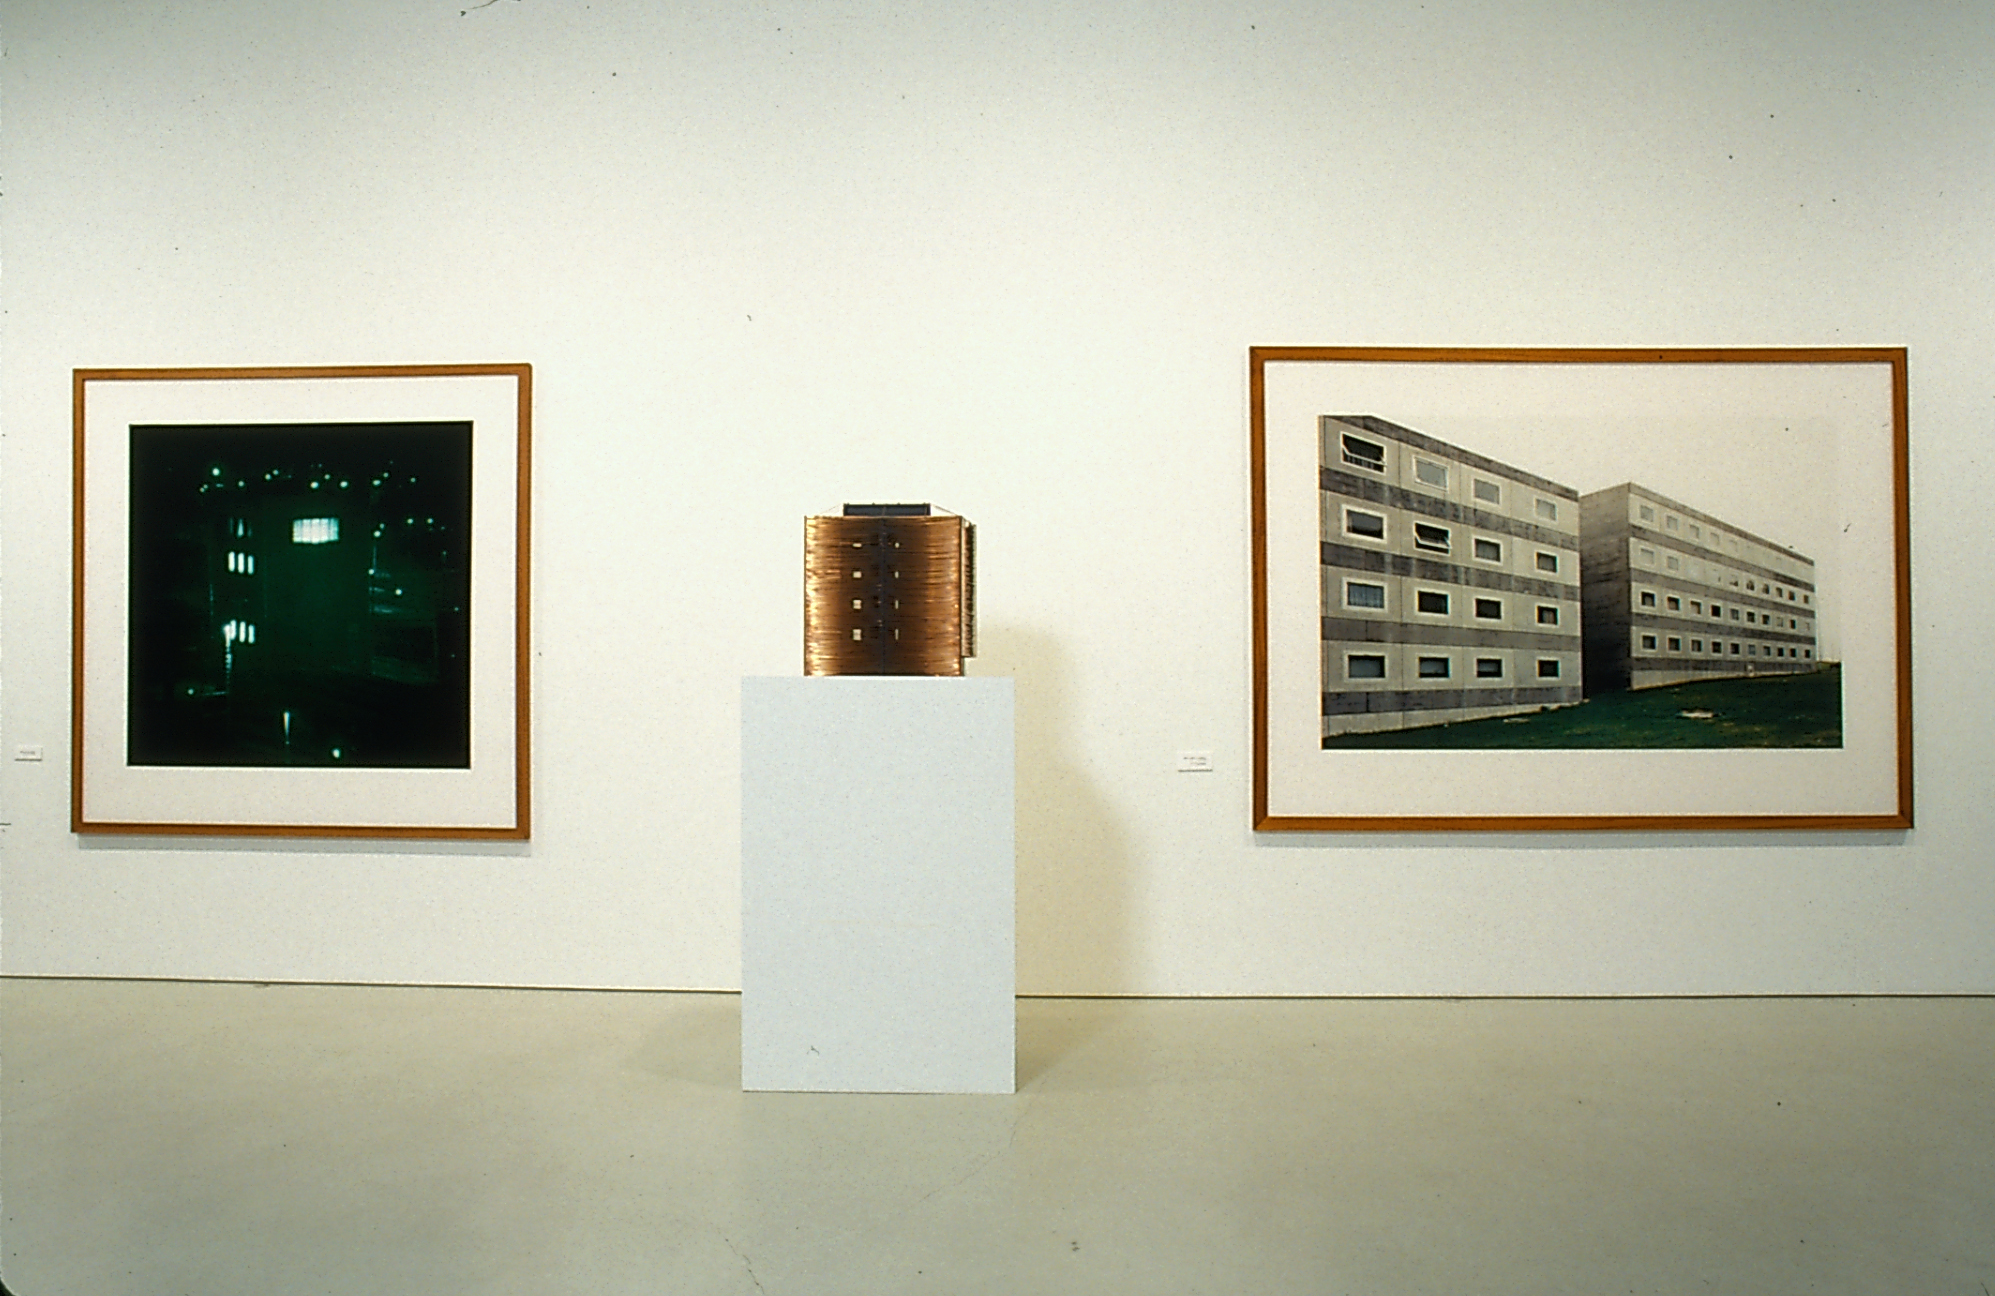 Installation shot hm 1994 copy